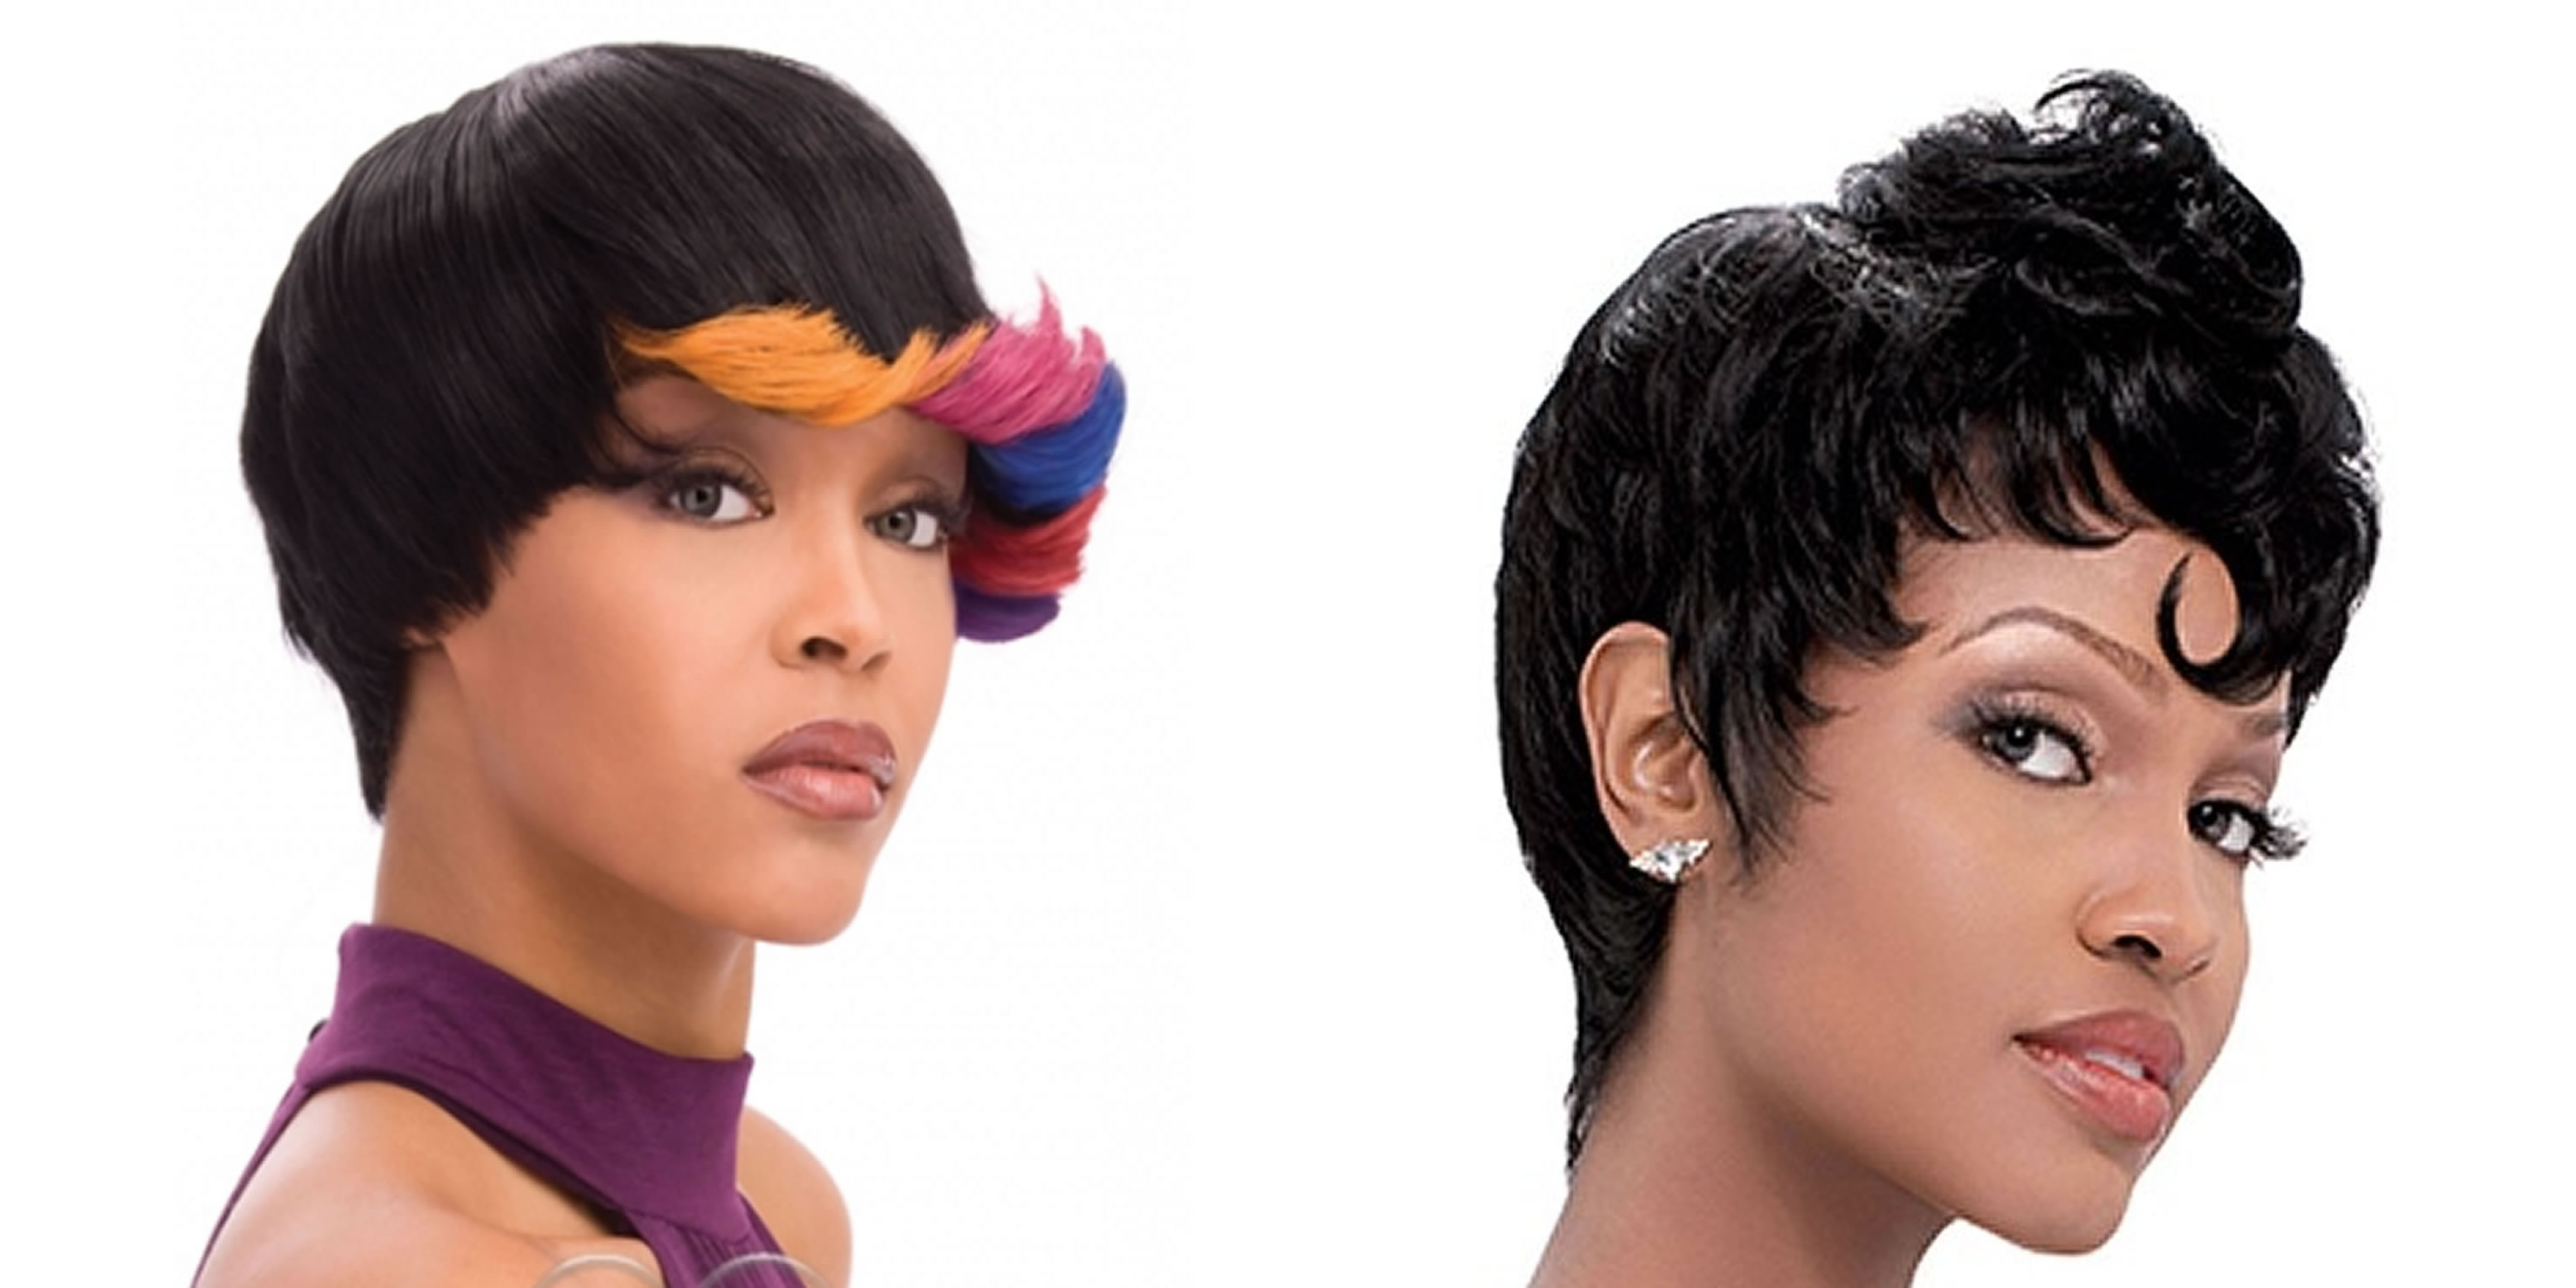 Pixie Hairstyles For Black Women – 60 Cool Short Haircuts For 2017 Inside Short Short Haircuts For Black Women (View 6 of 25)